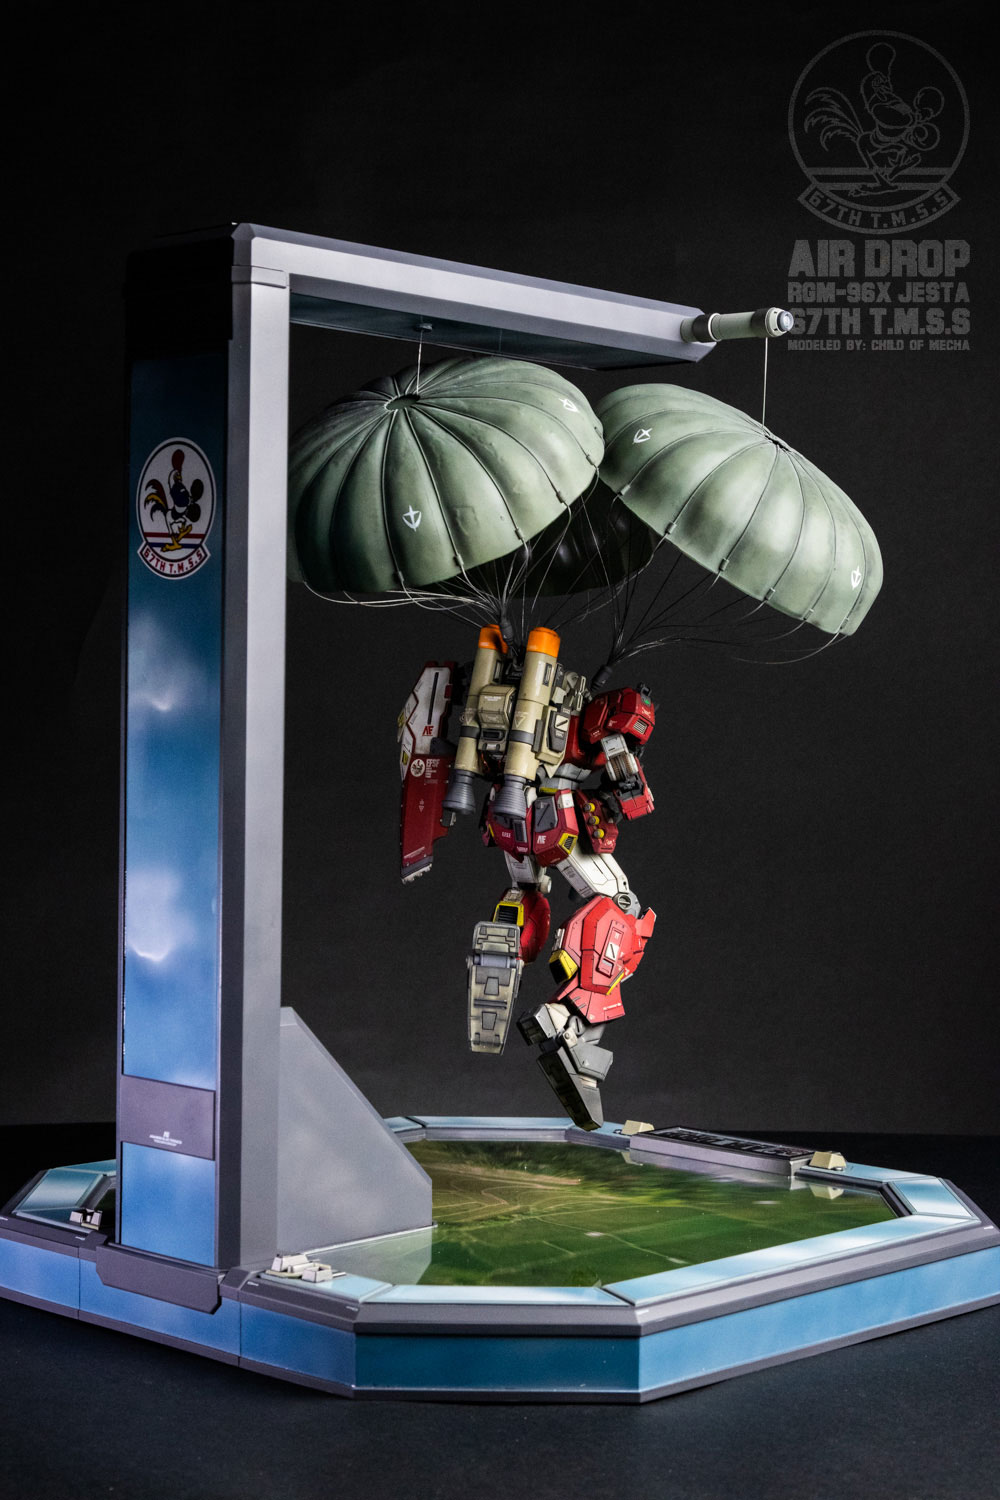 Air Drop - Jesta - 179.jpg